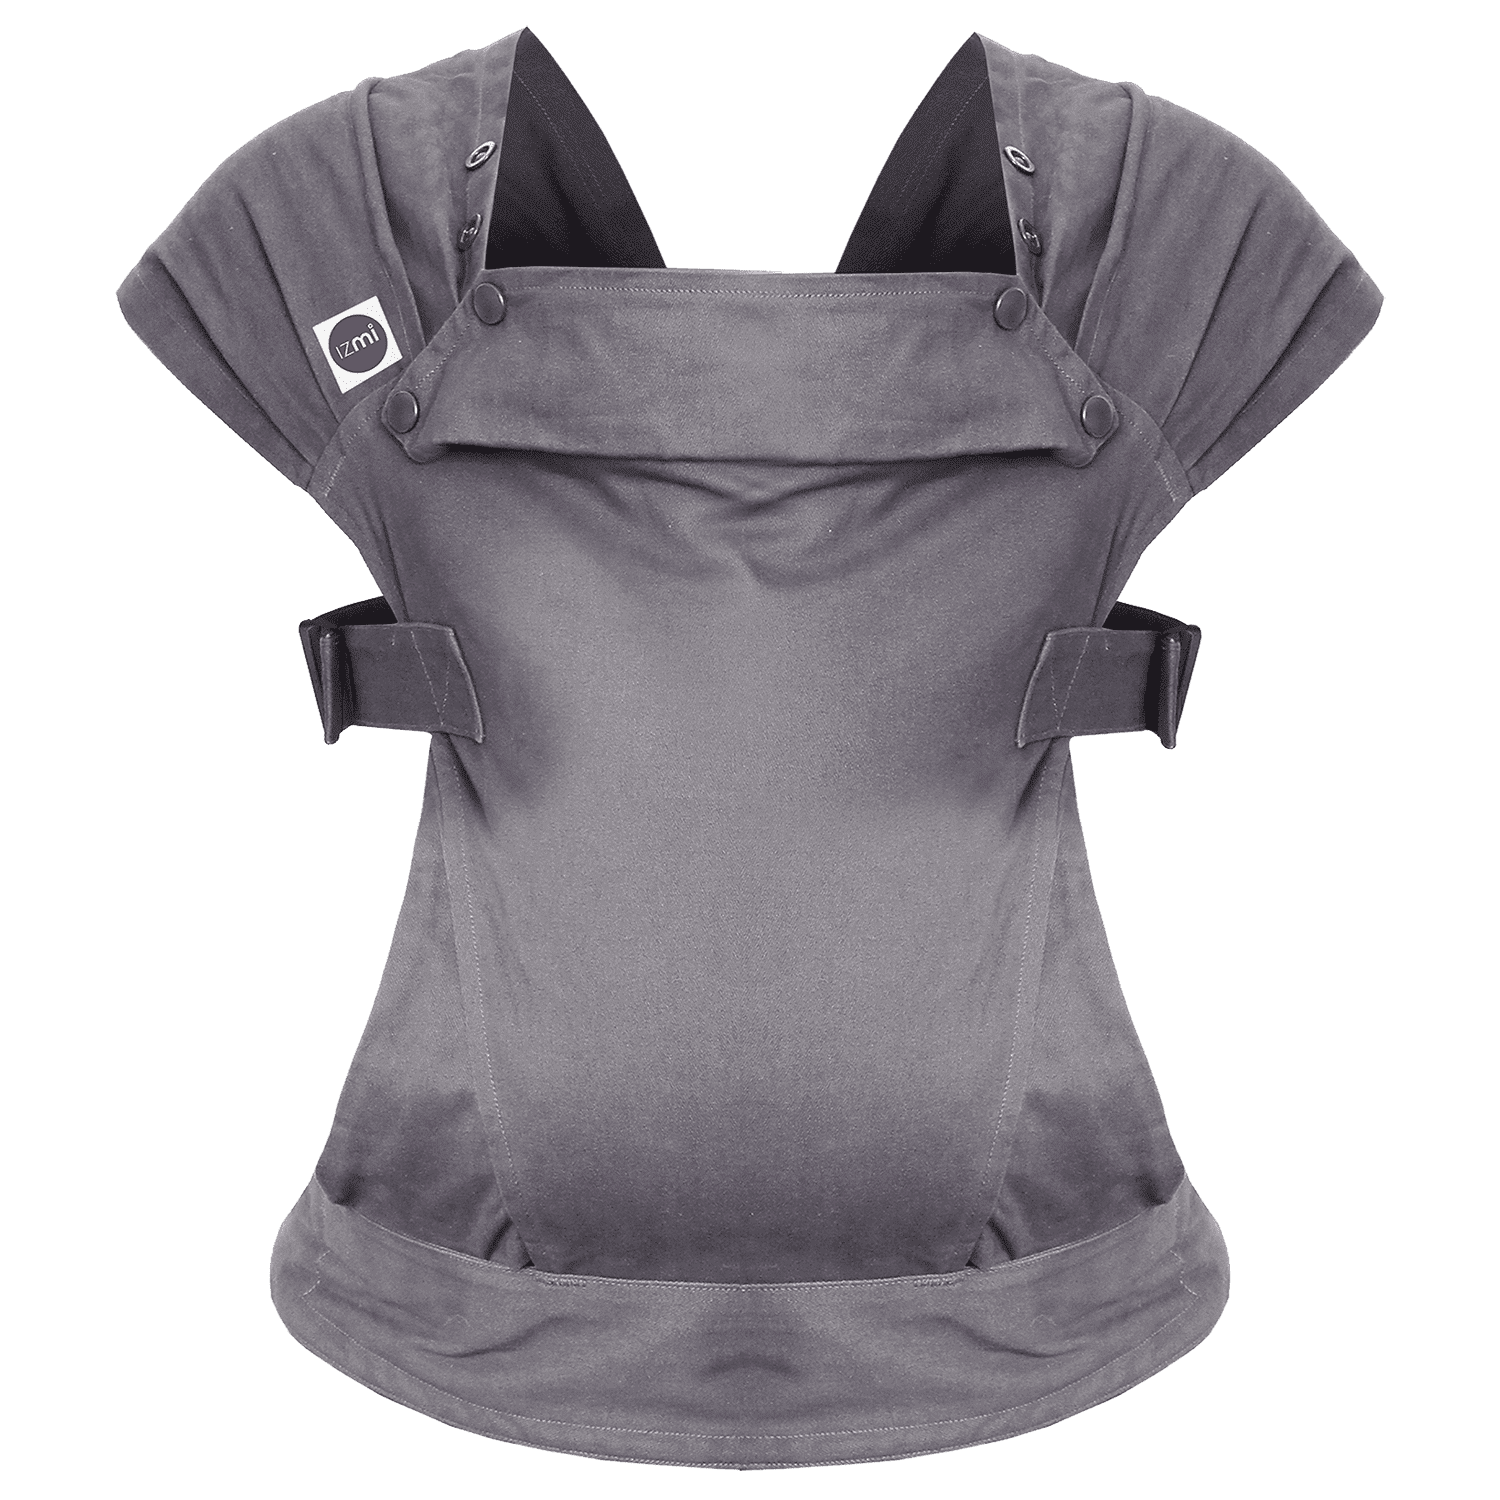 Izmi Baby Carrier / Cotton / Mid Grey product image